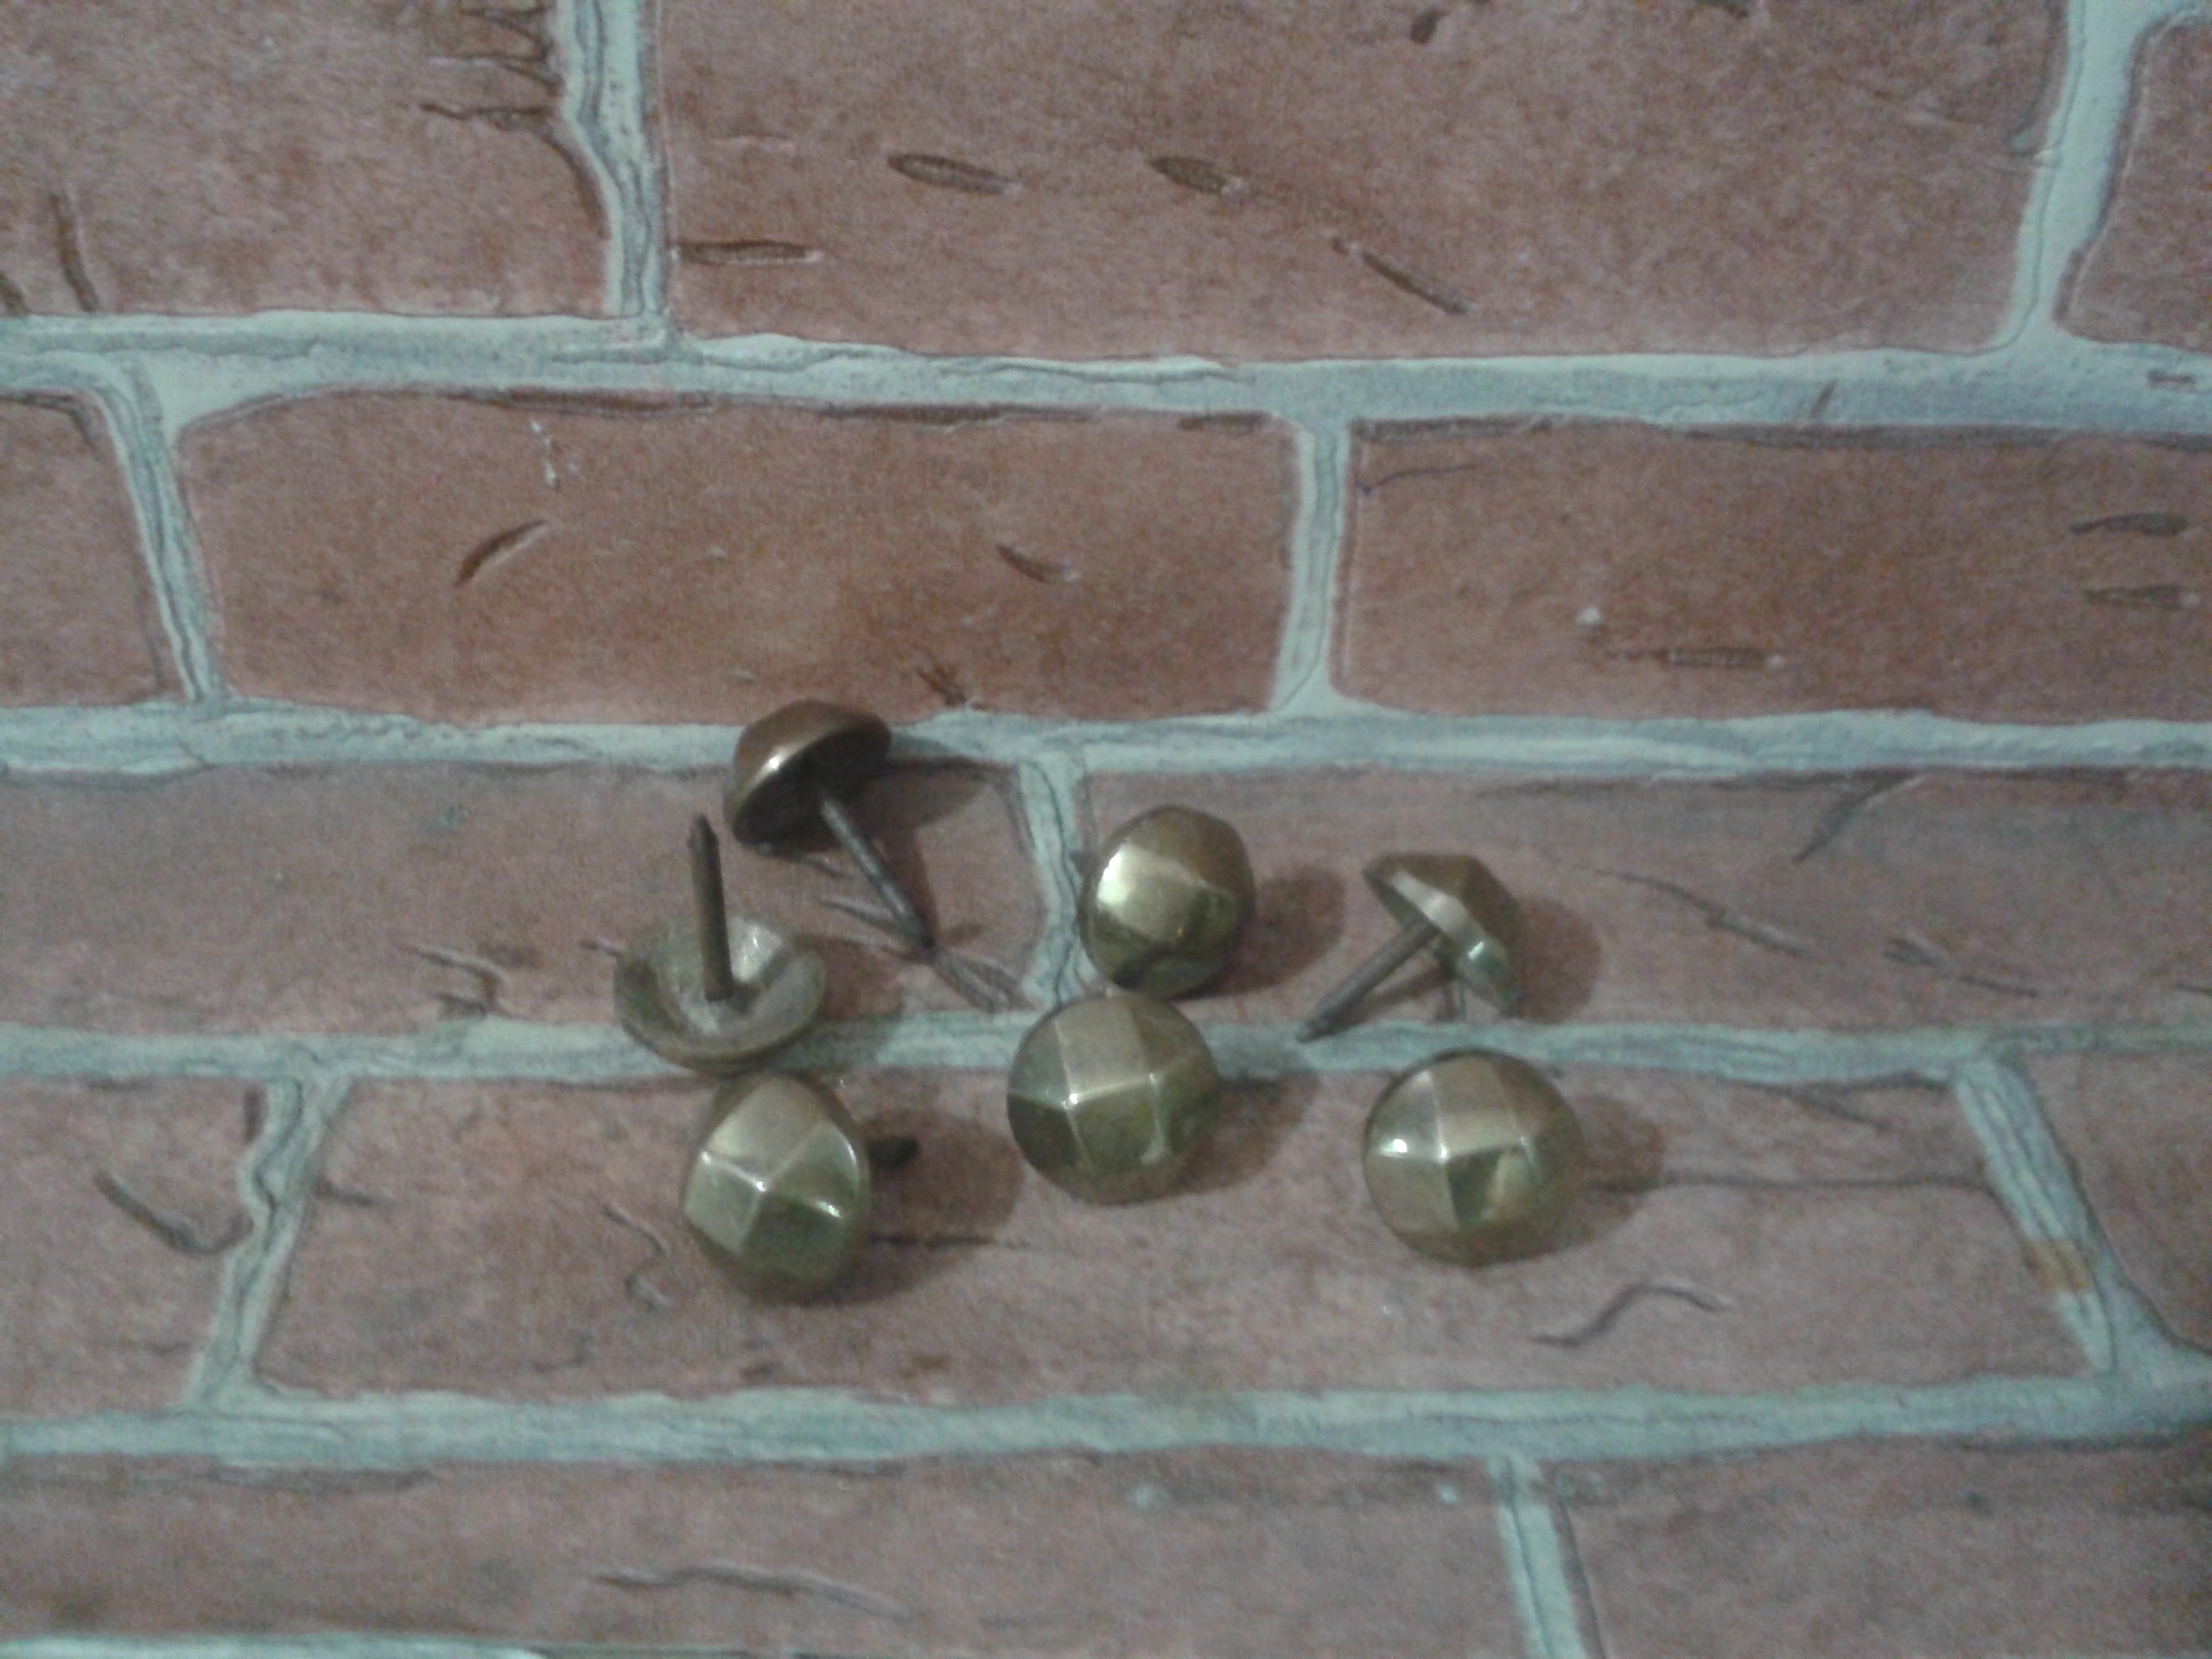 Brass nail code AA.80PT size 16 mm.